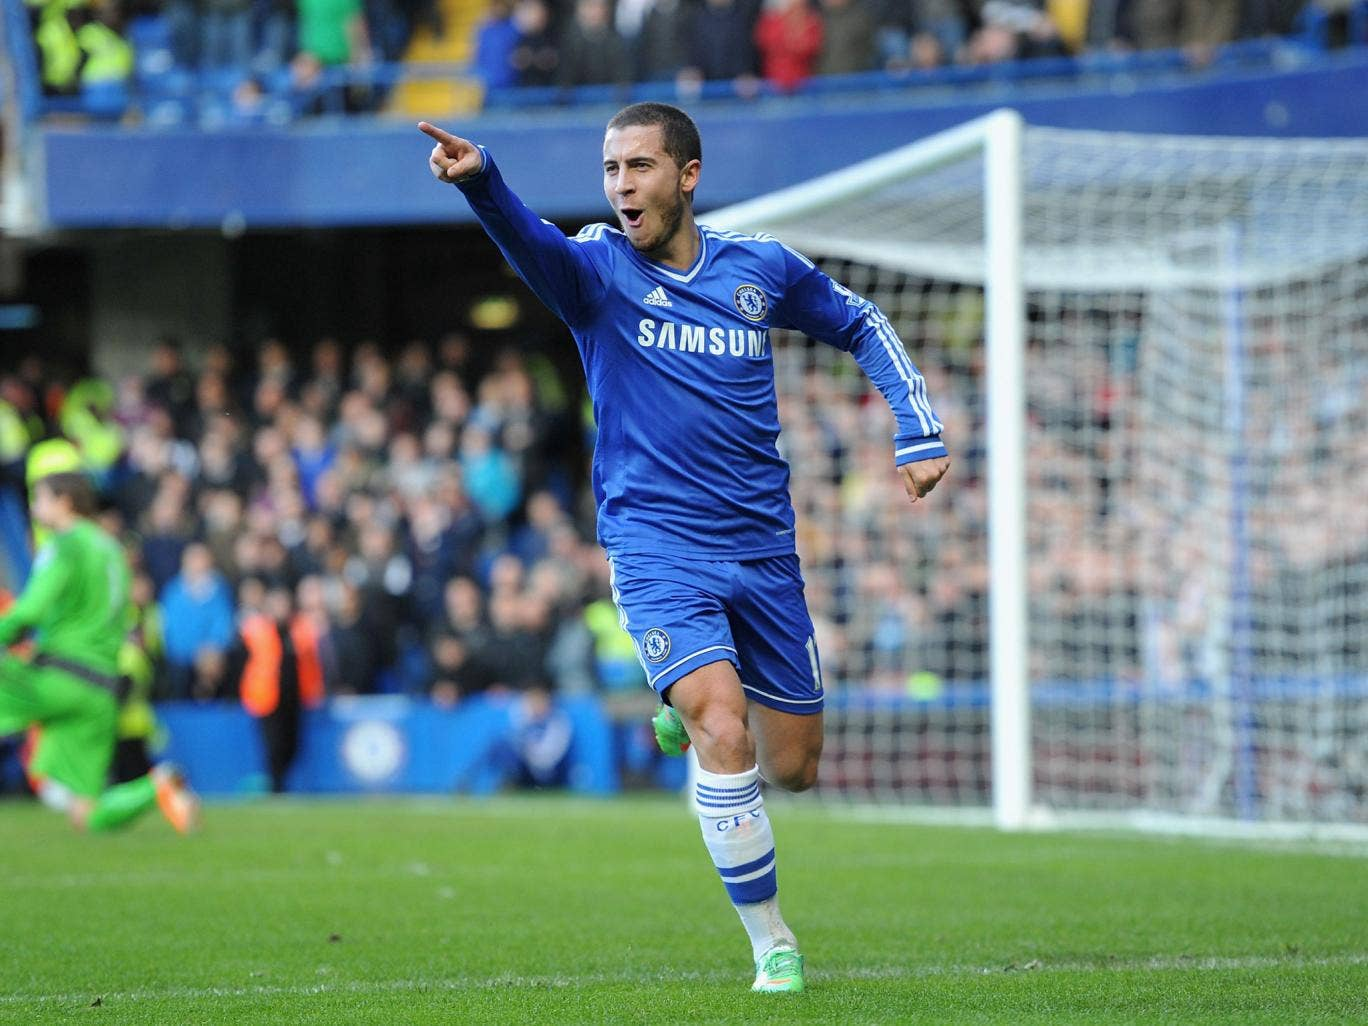 Eden Hazard was convinced to join Chelsea after Roman Abramovich offered to triple his LIlle wages, according to the French club's manager Rudi Garcia